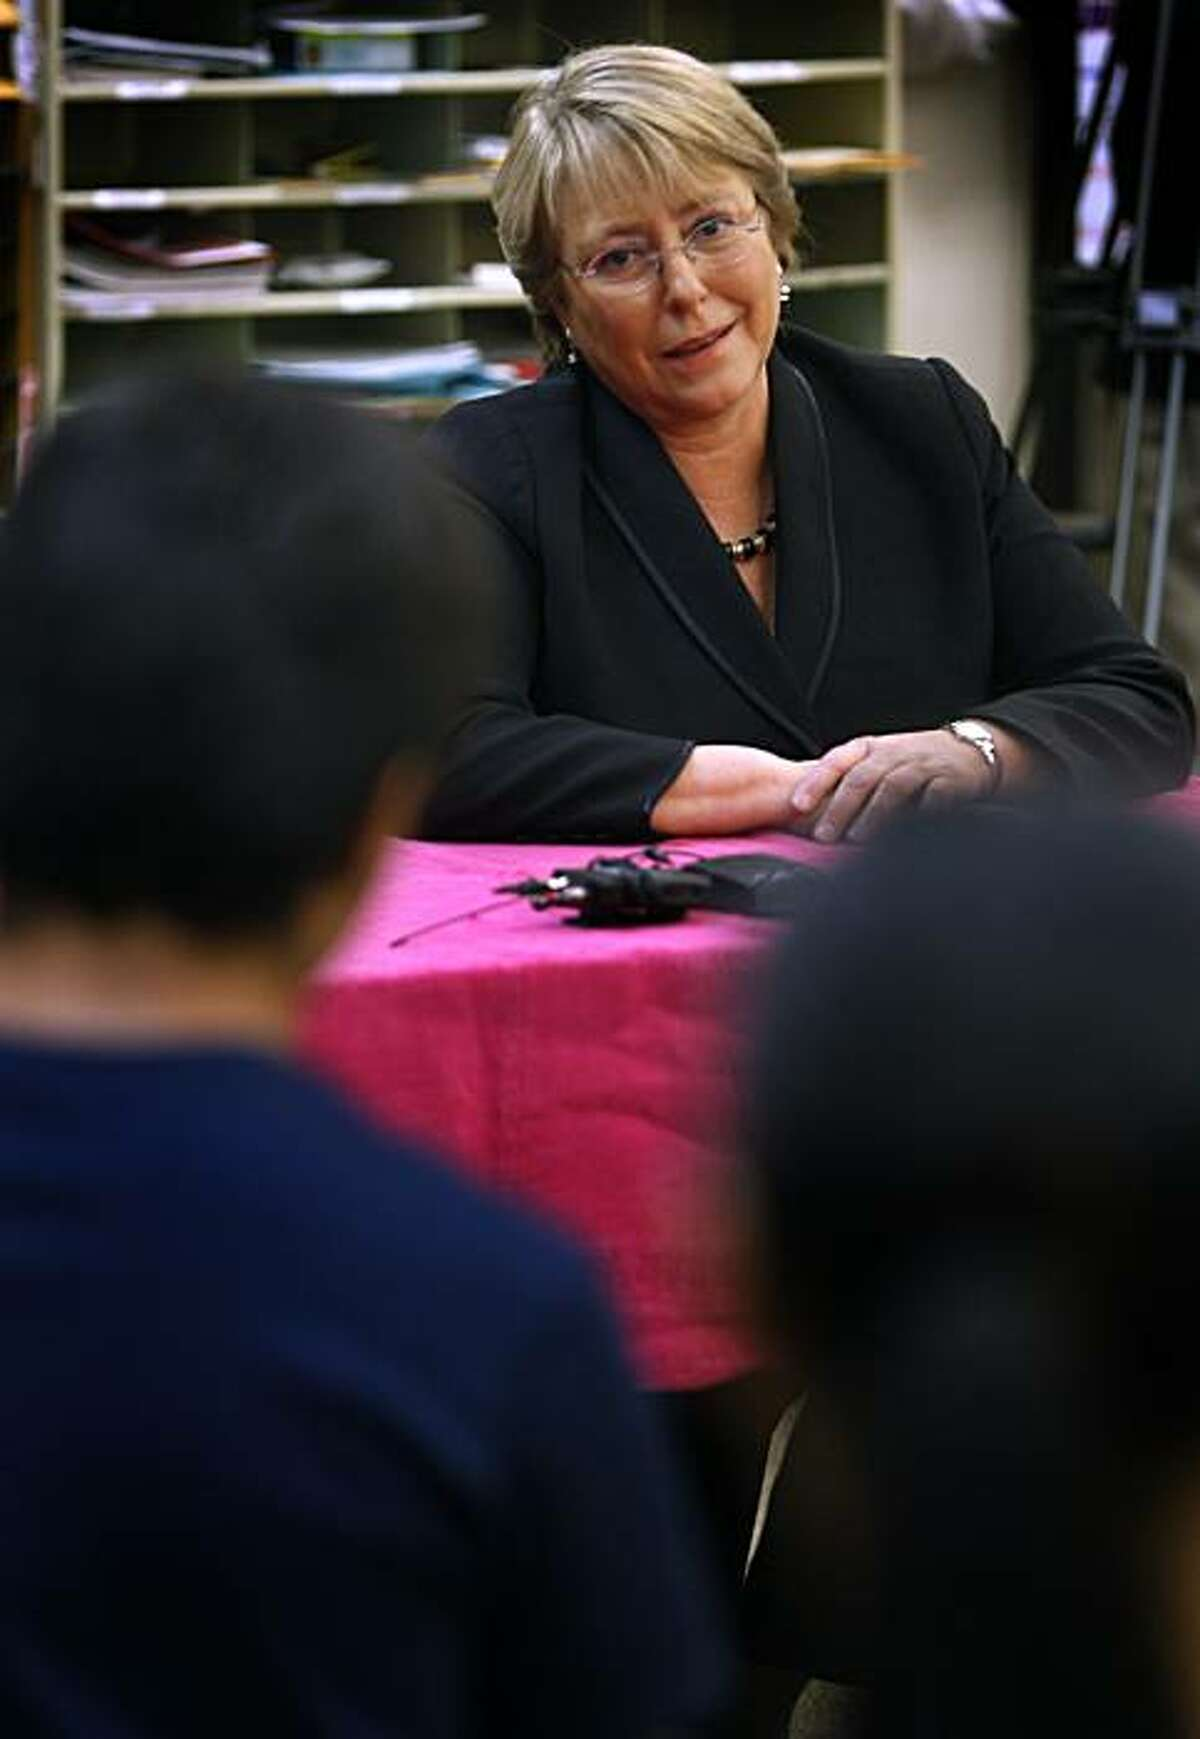 Michelle Bachelet, the former president of Chile, visits students at Oakland International High School in Oakland, Calif., on Wednesday, May 5, 2010.